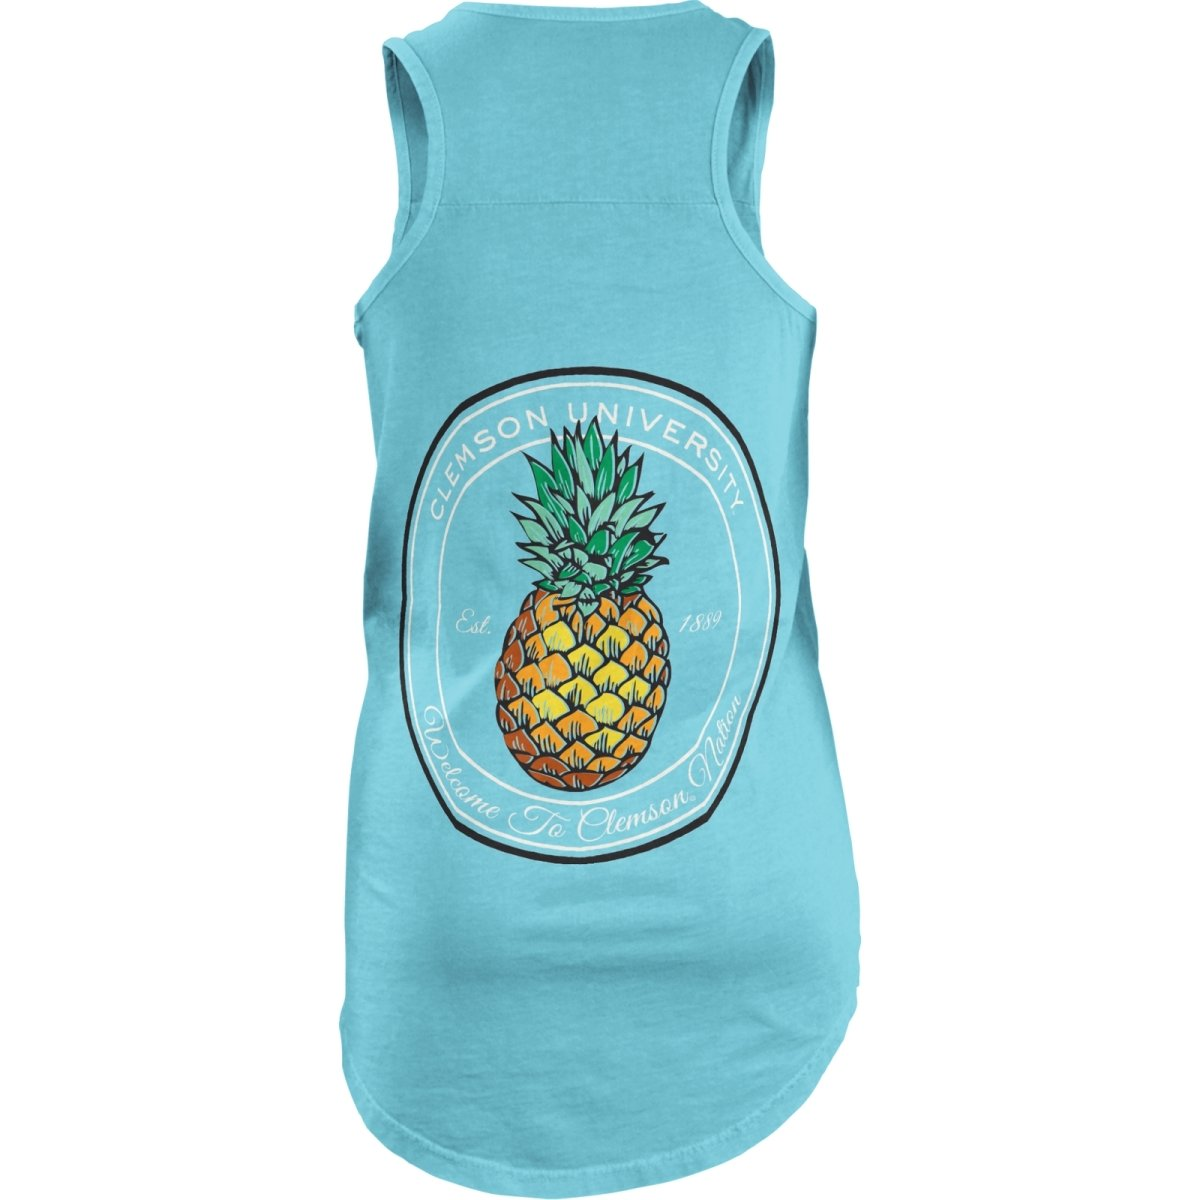 Ladies Charleston Tank Top - Mr. Knickerbocker